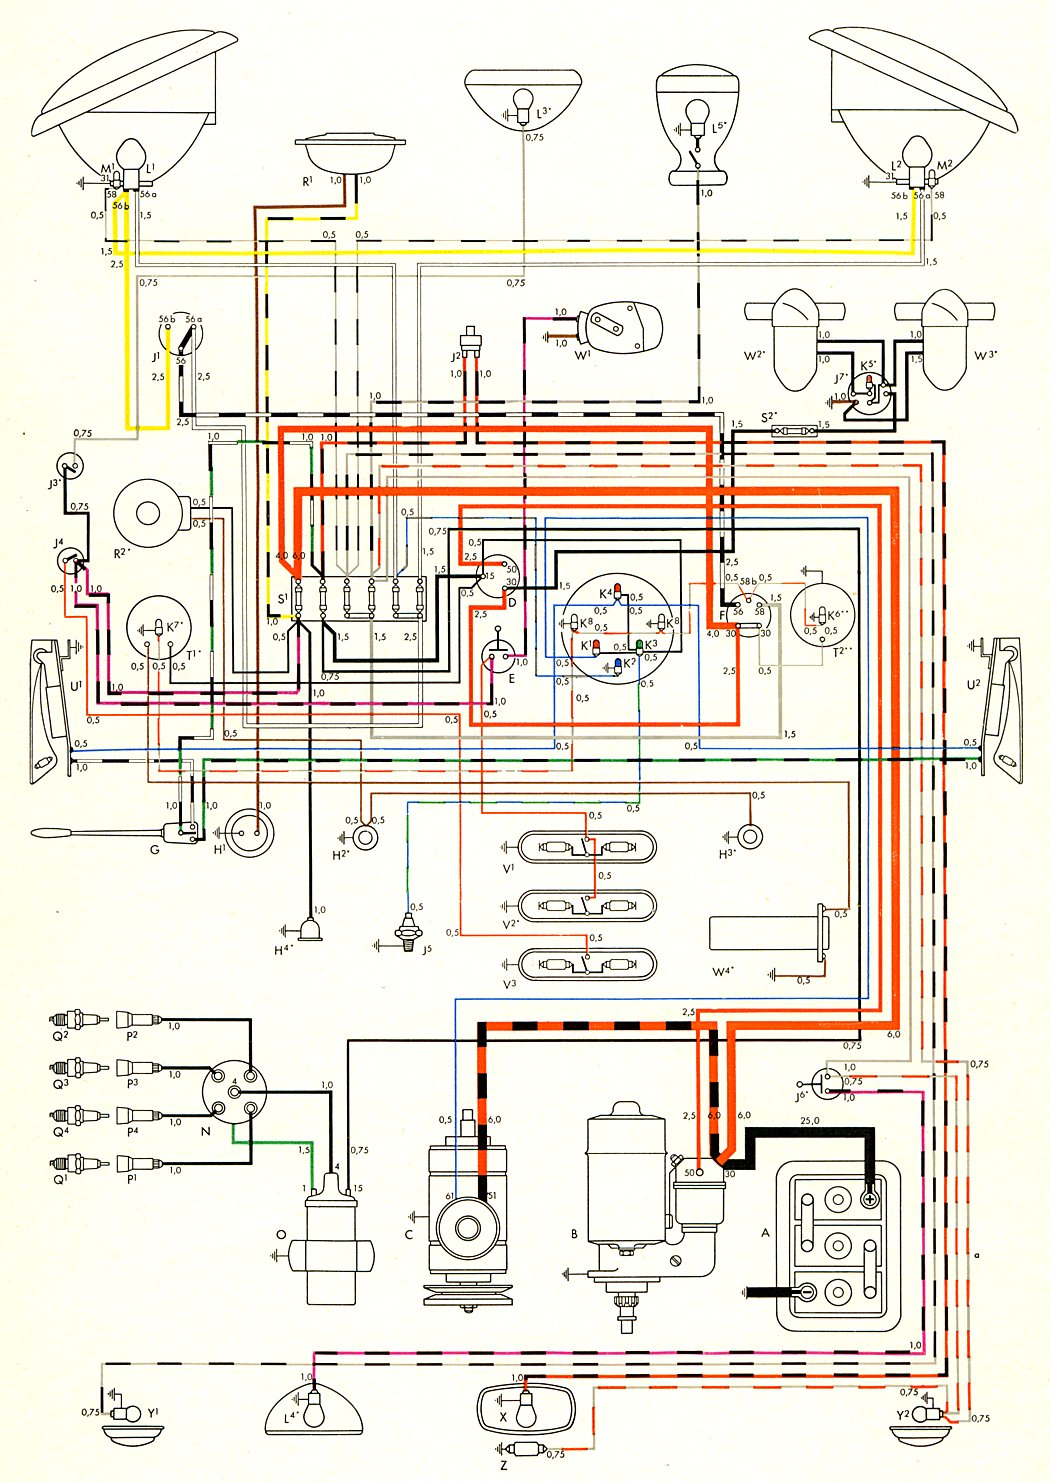 bus_nov57 thesamba com type 2 wiring diagrams Electrical Wiring Diagrams at eliteediting.co